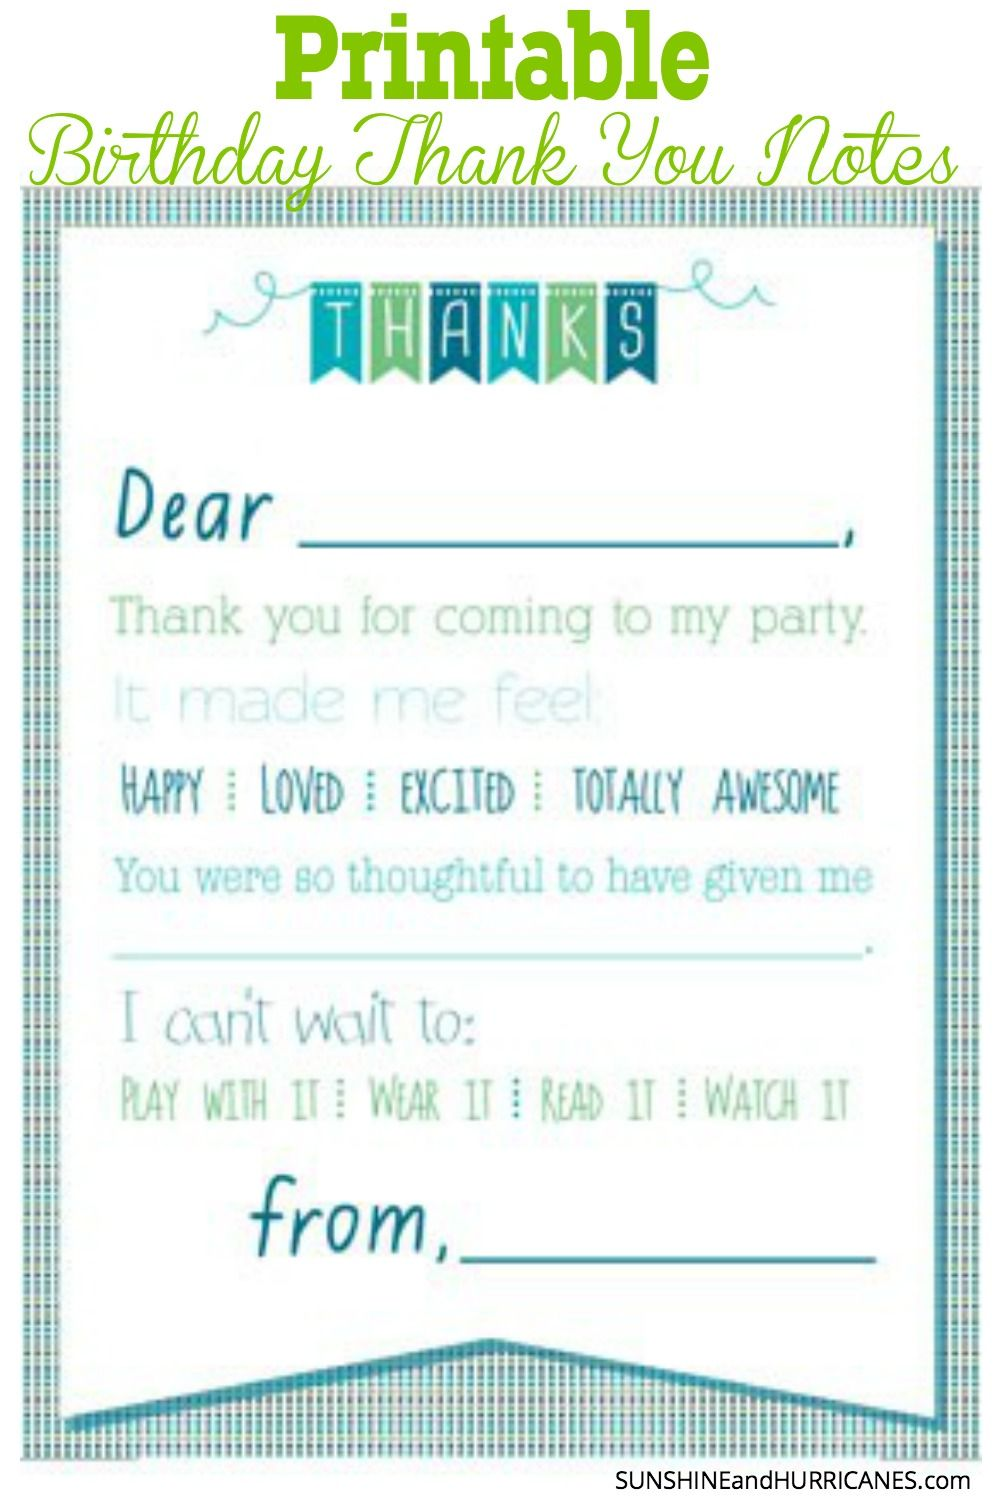 Printable Birthday Thank You Notes Birthday Thank You Notes Thank You Cards From Kids Thank You Note Template